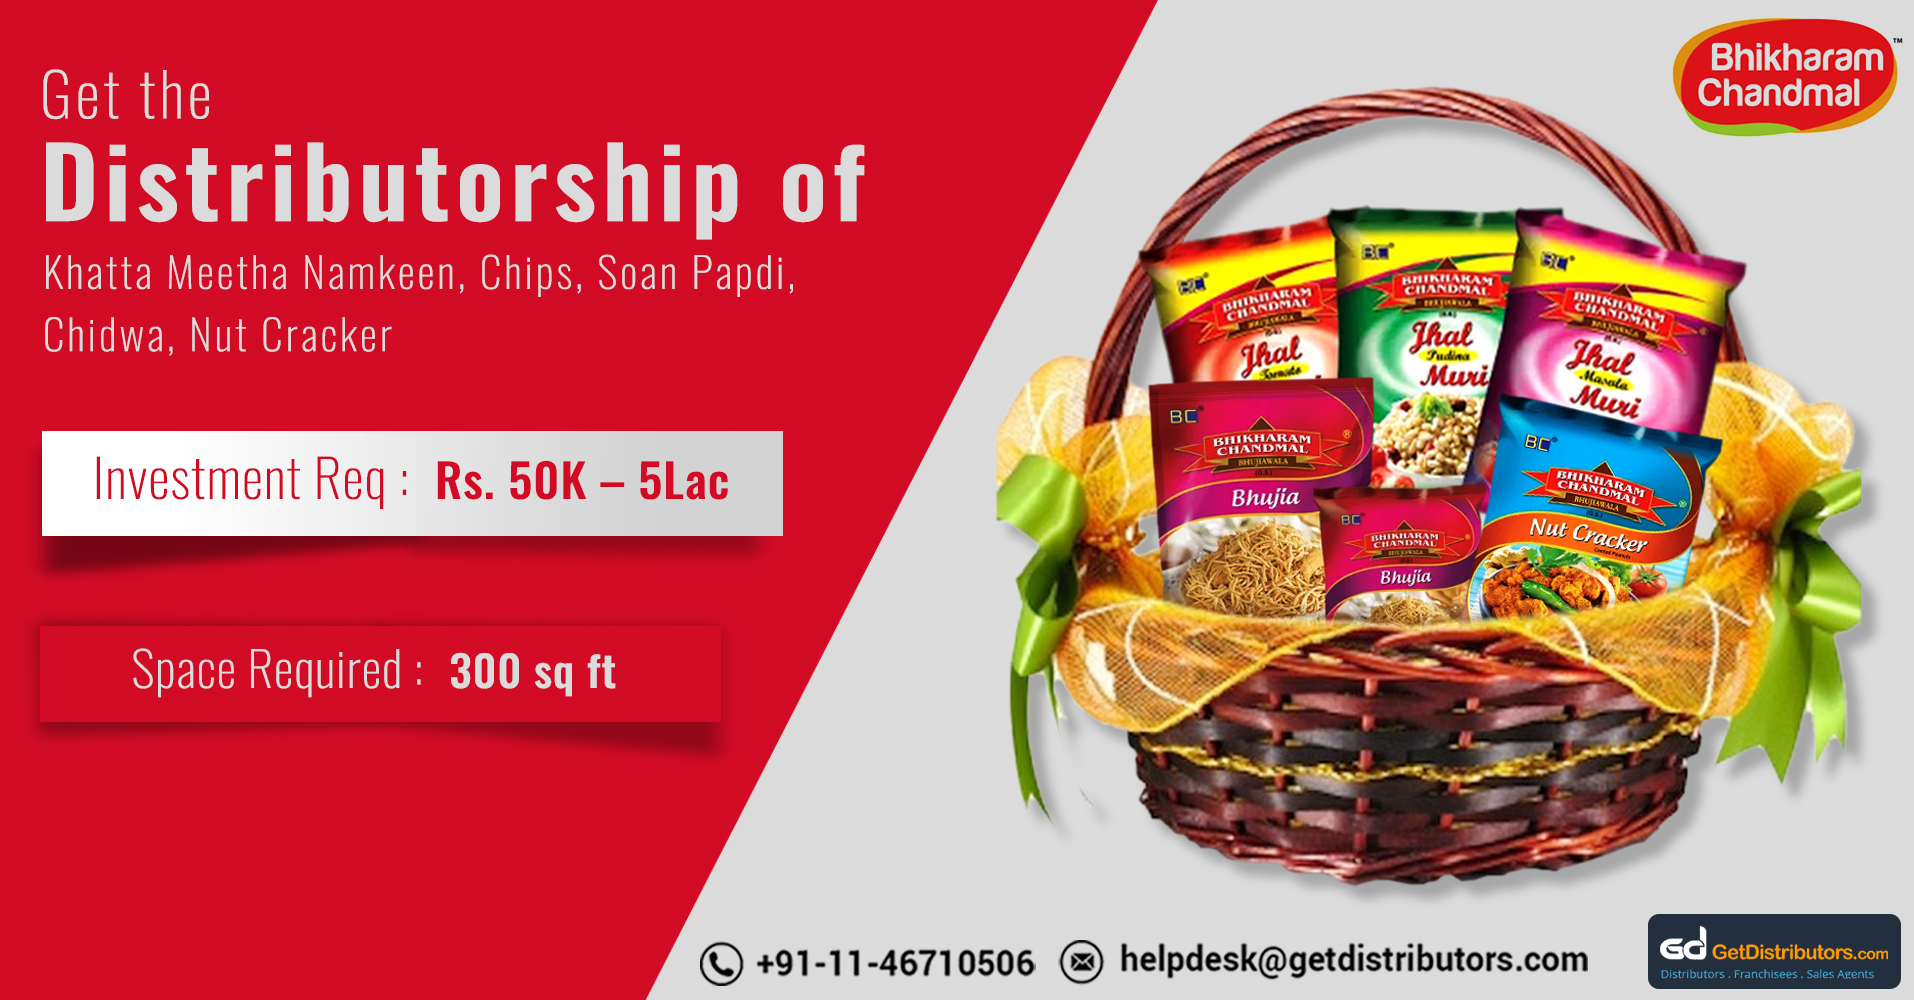 Offering High Quality Sweets And Namkeen Items At Affordable Price